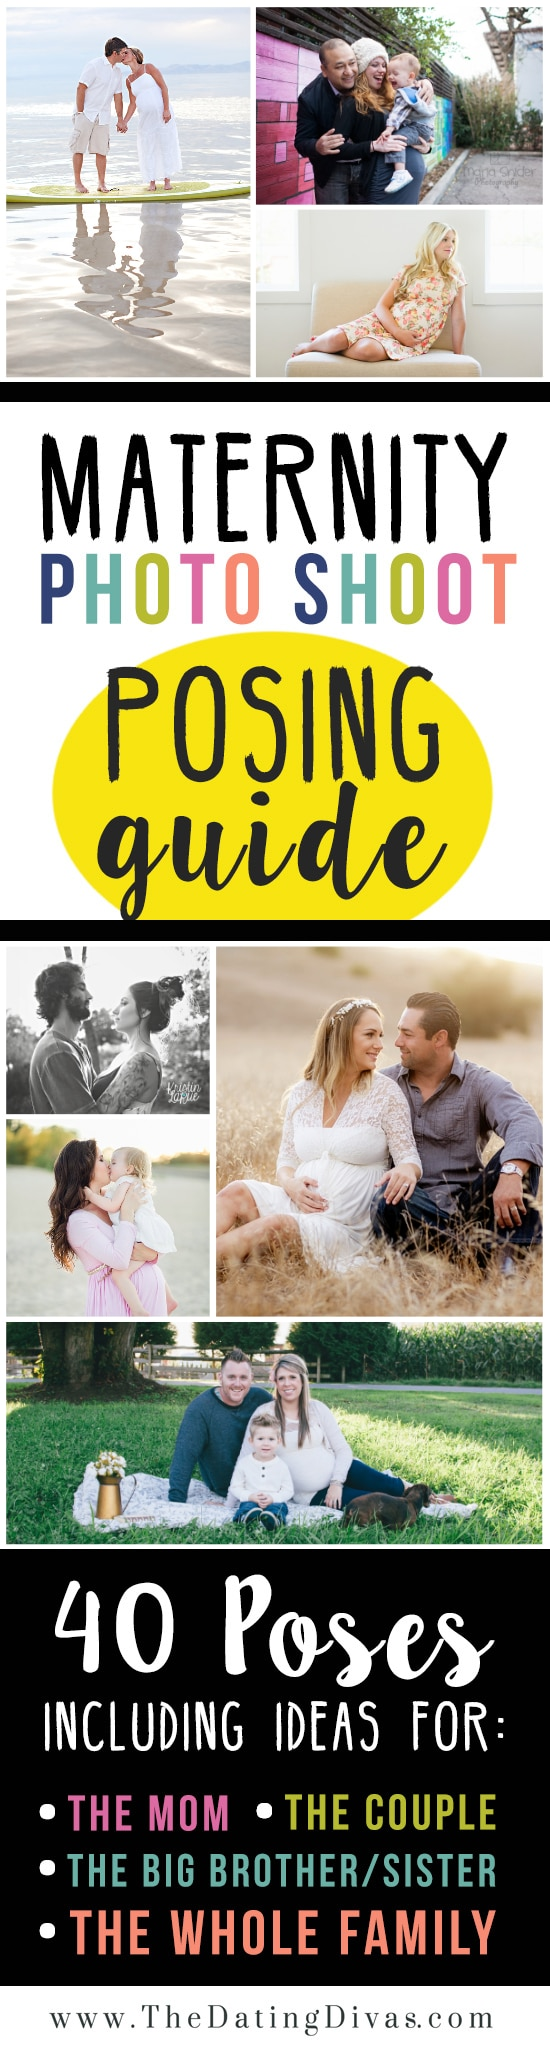 images of women and couples showing ideas for maternity photo posing